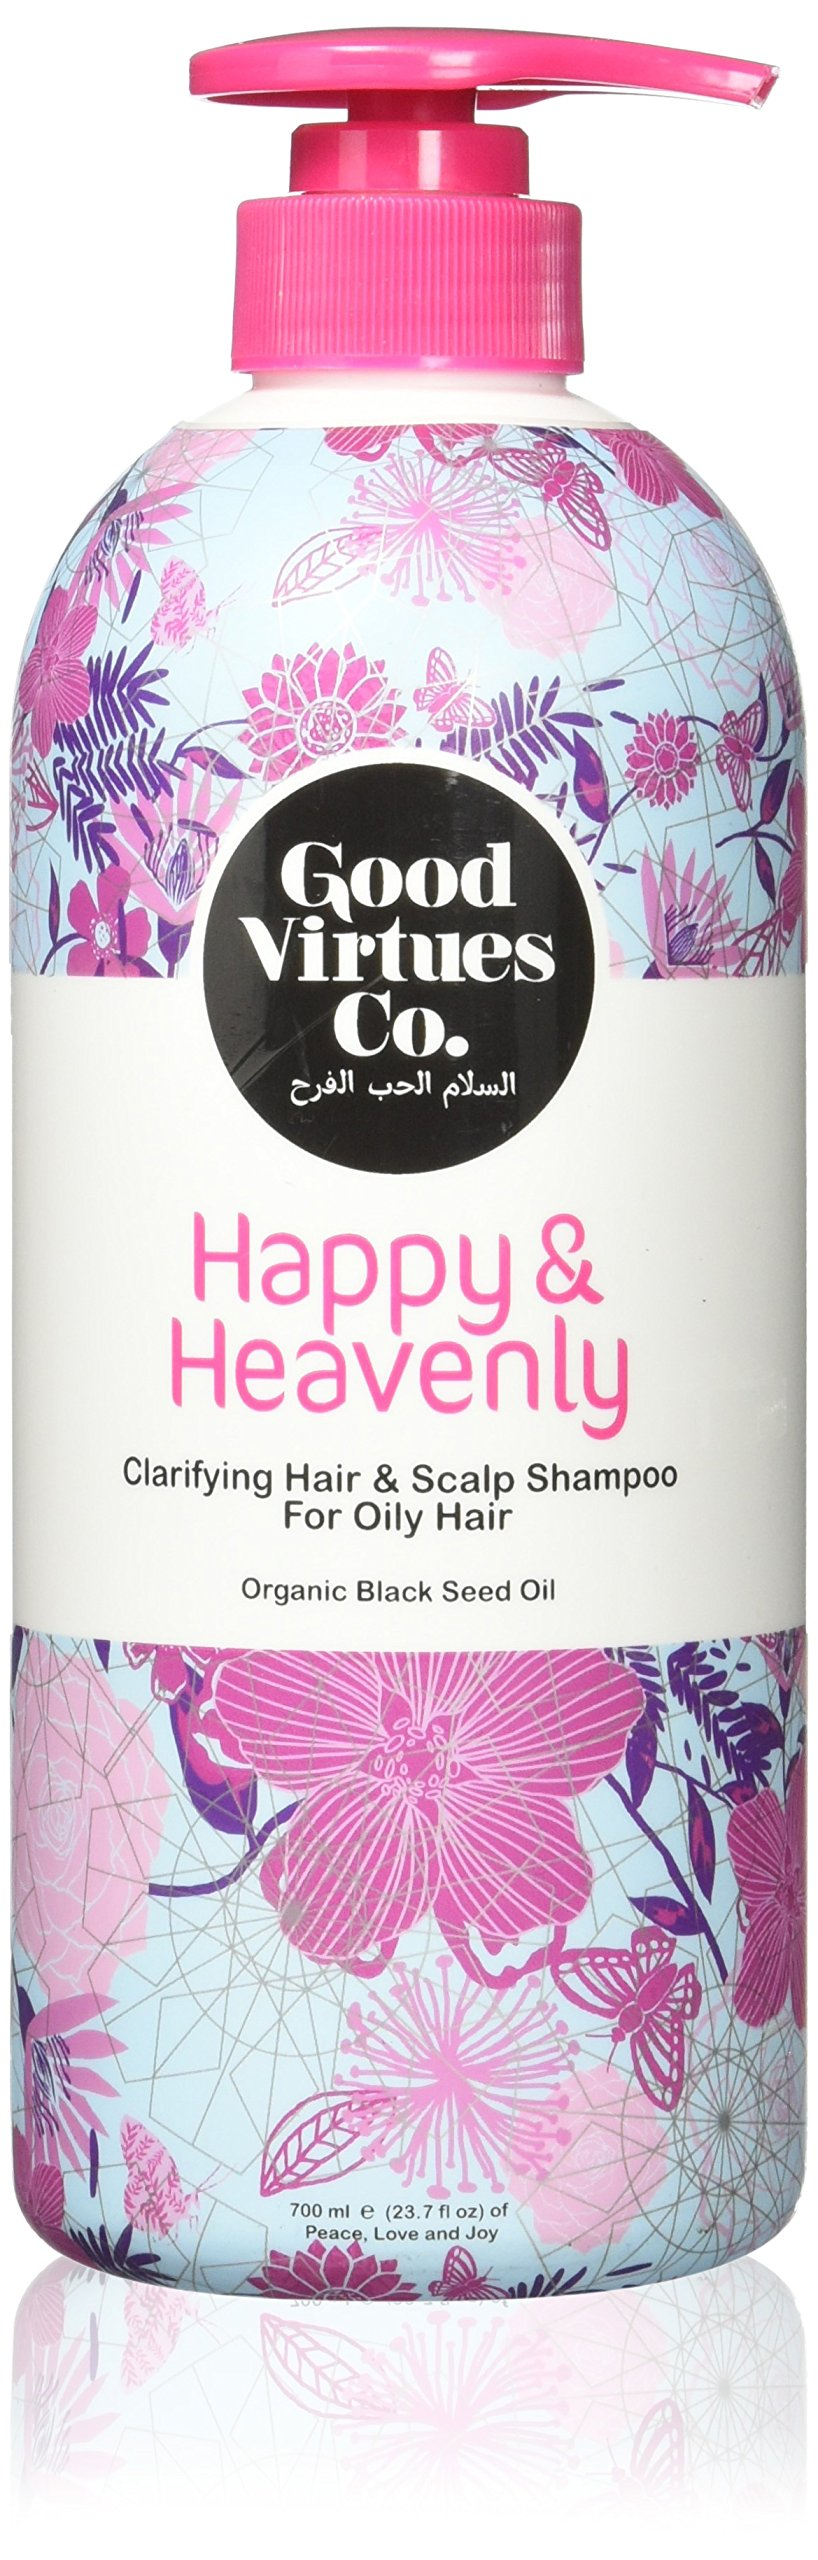 Good Virtues Co. Women Clarifying Shampoo for Daily Use, Deep Moisturizing, Suitable for Oily Hair, Itchy and Dry Scalp, 23.7 oz